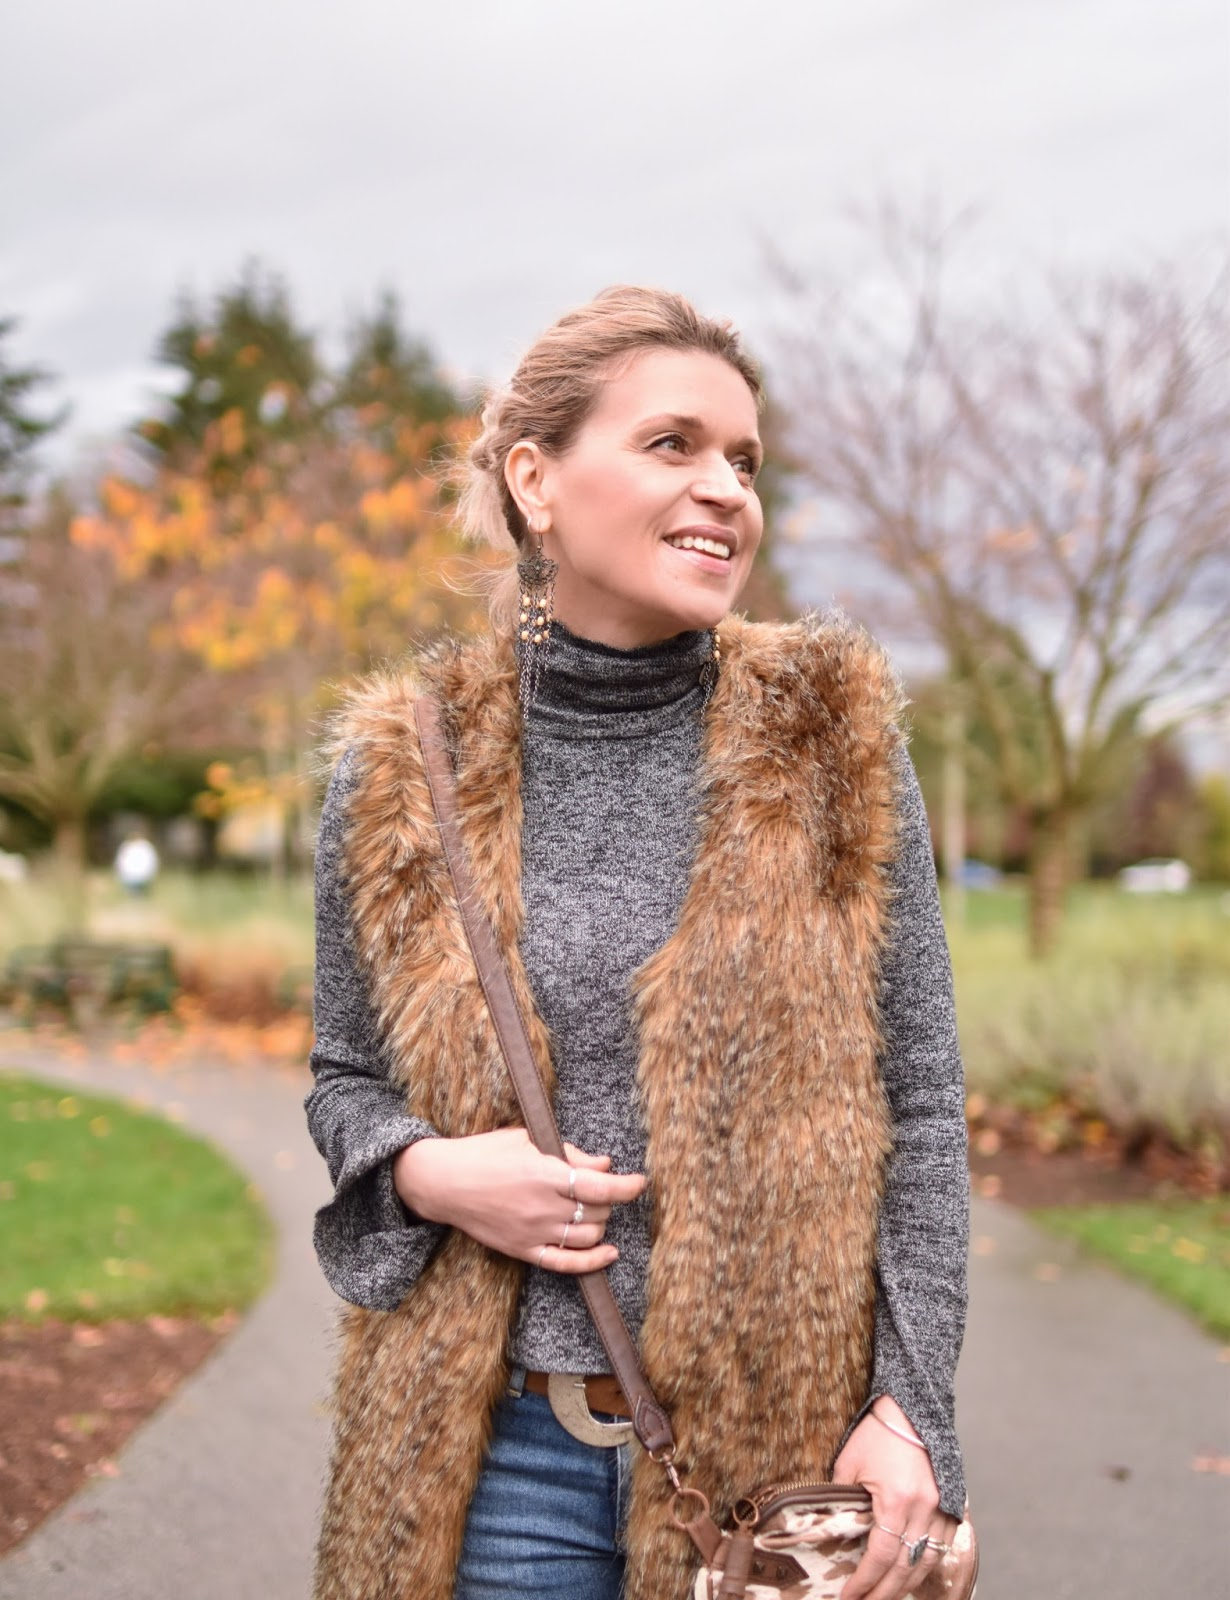 Monika Faulkner outfit inspiration - faux-fur vest, marled grey turtleneck sweater